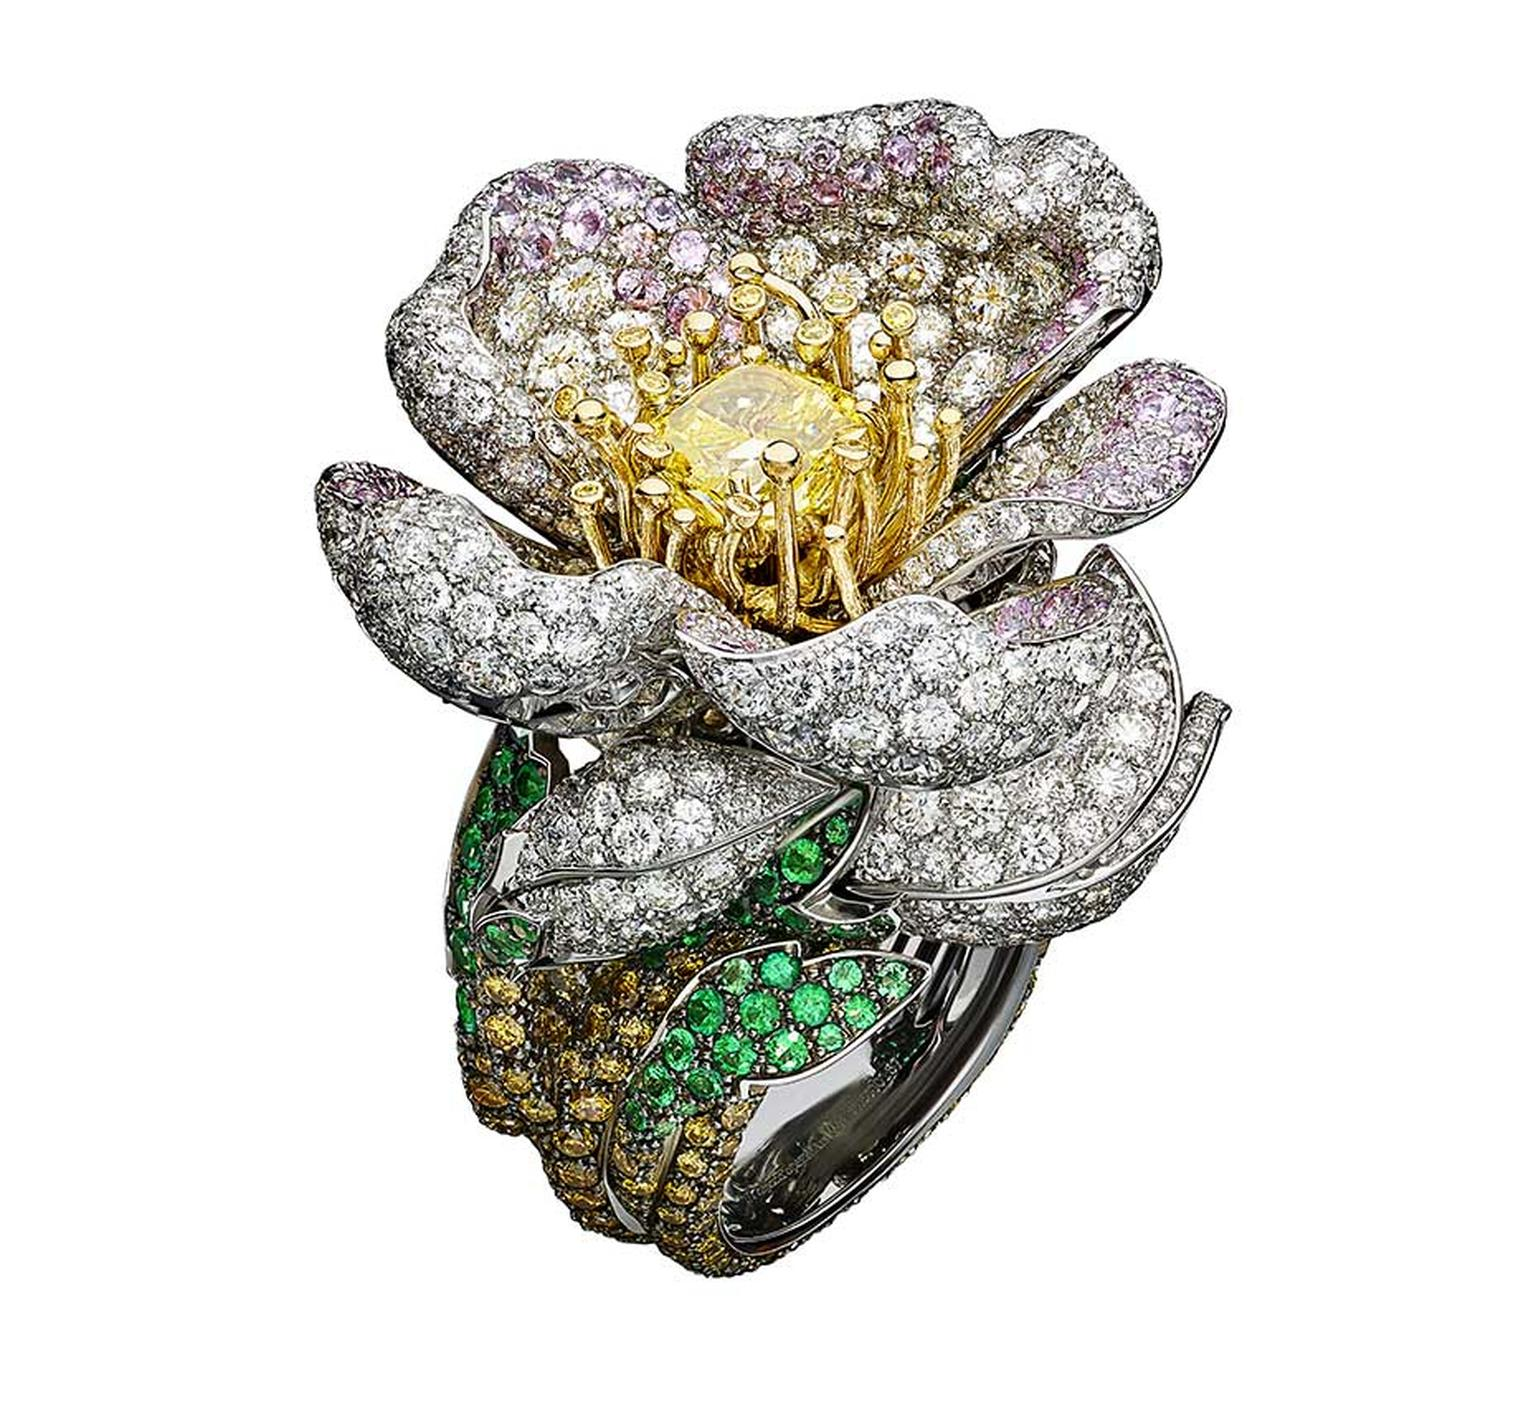 Giampiero Bodino Primavera white and yellow gold ring with white, grey, yellow and cognac diamonds, pink sapphires, emeralds and a central yellow diamond. Image: Laziz Hamani.